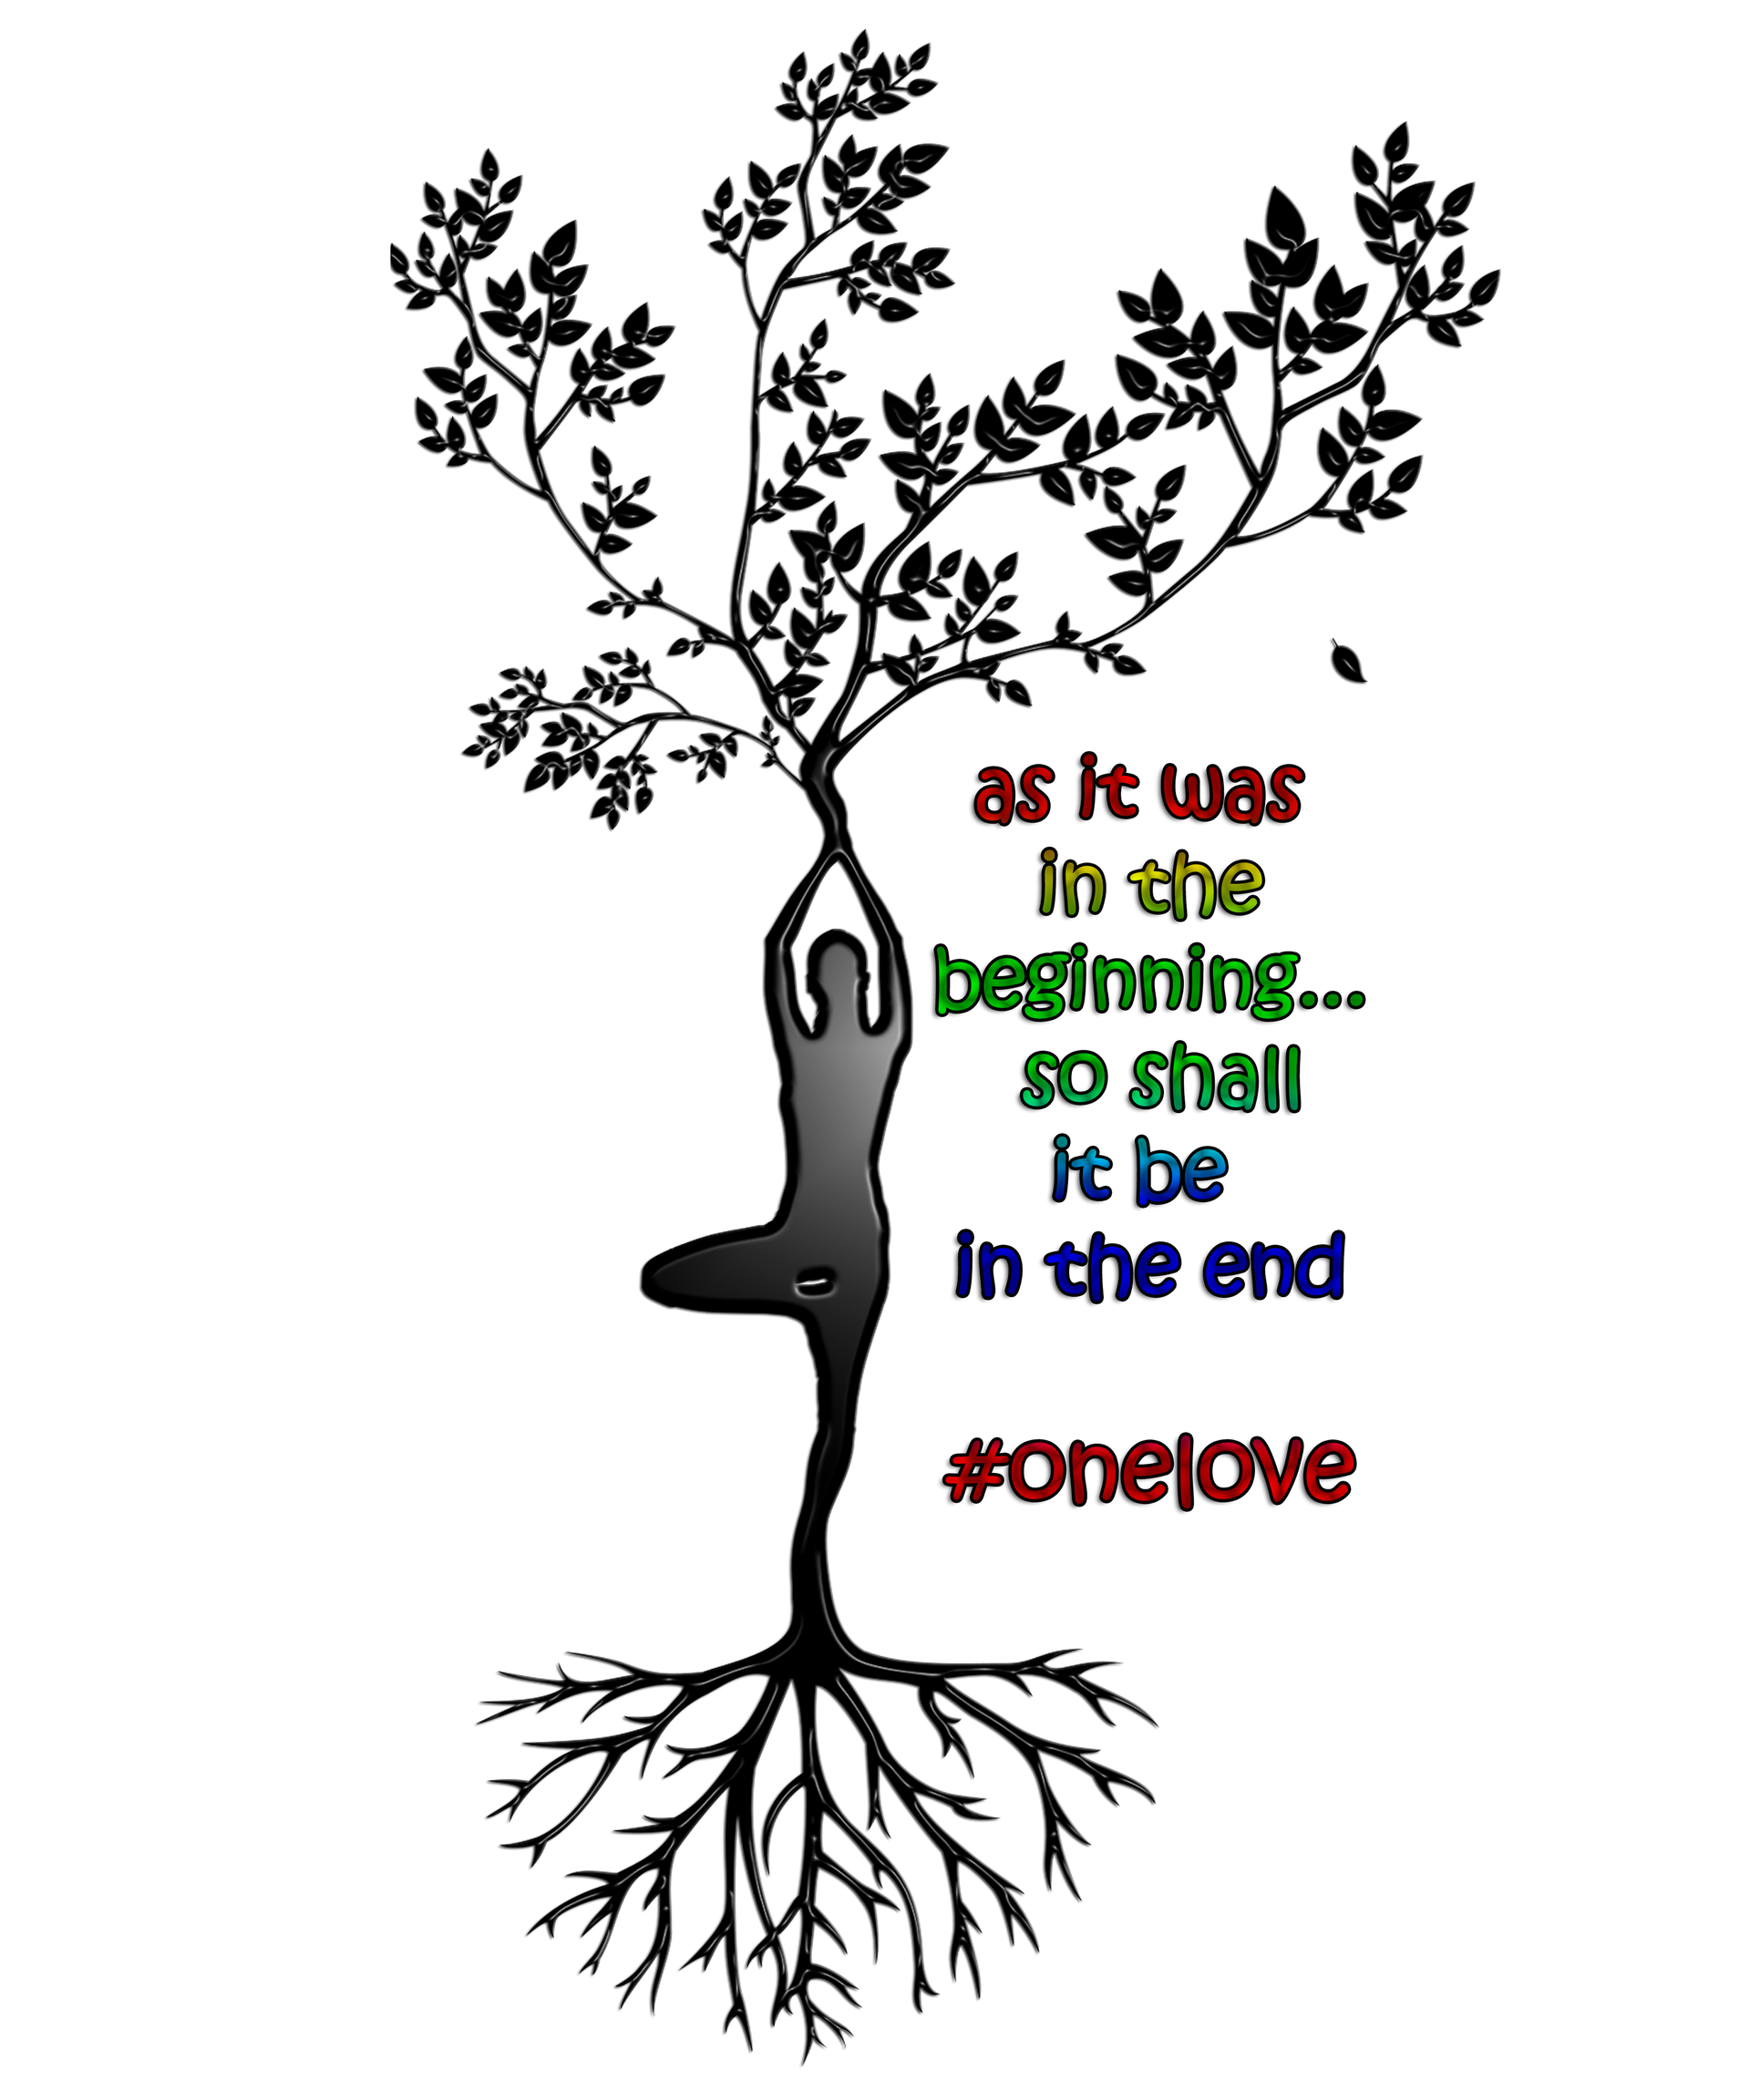 In the beginning one love